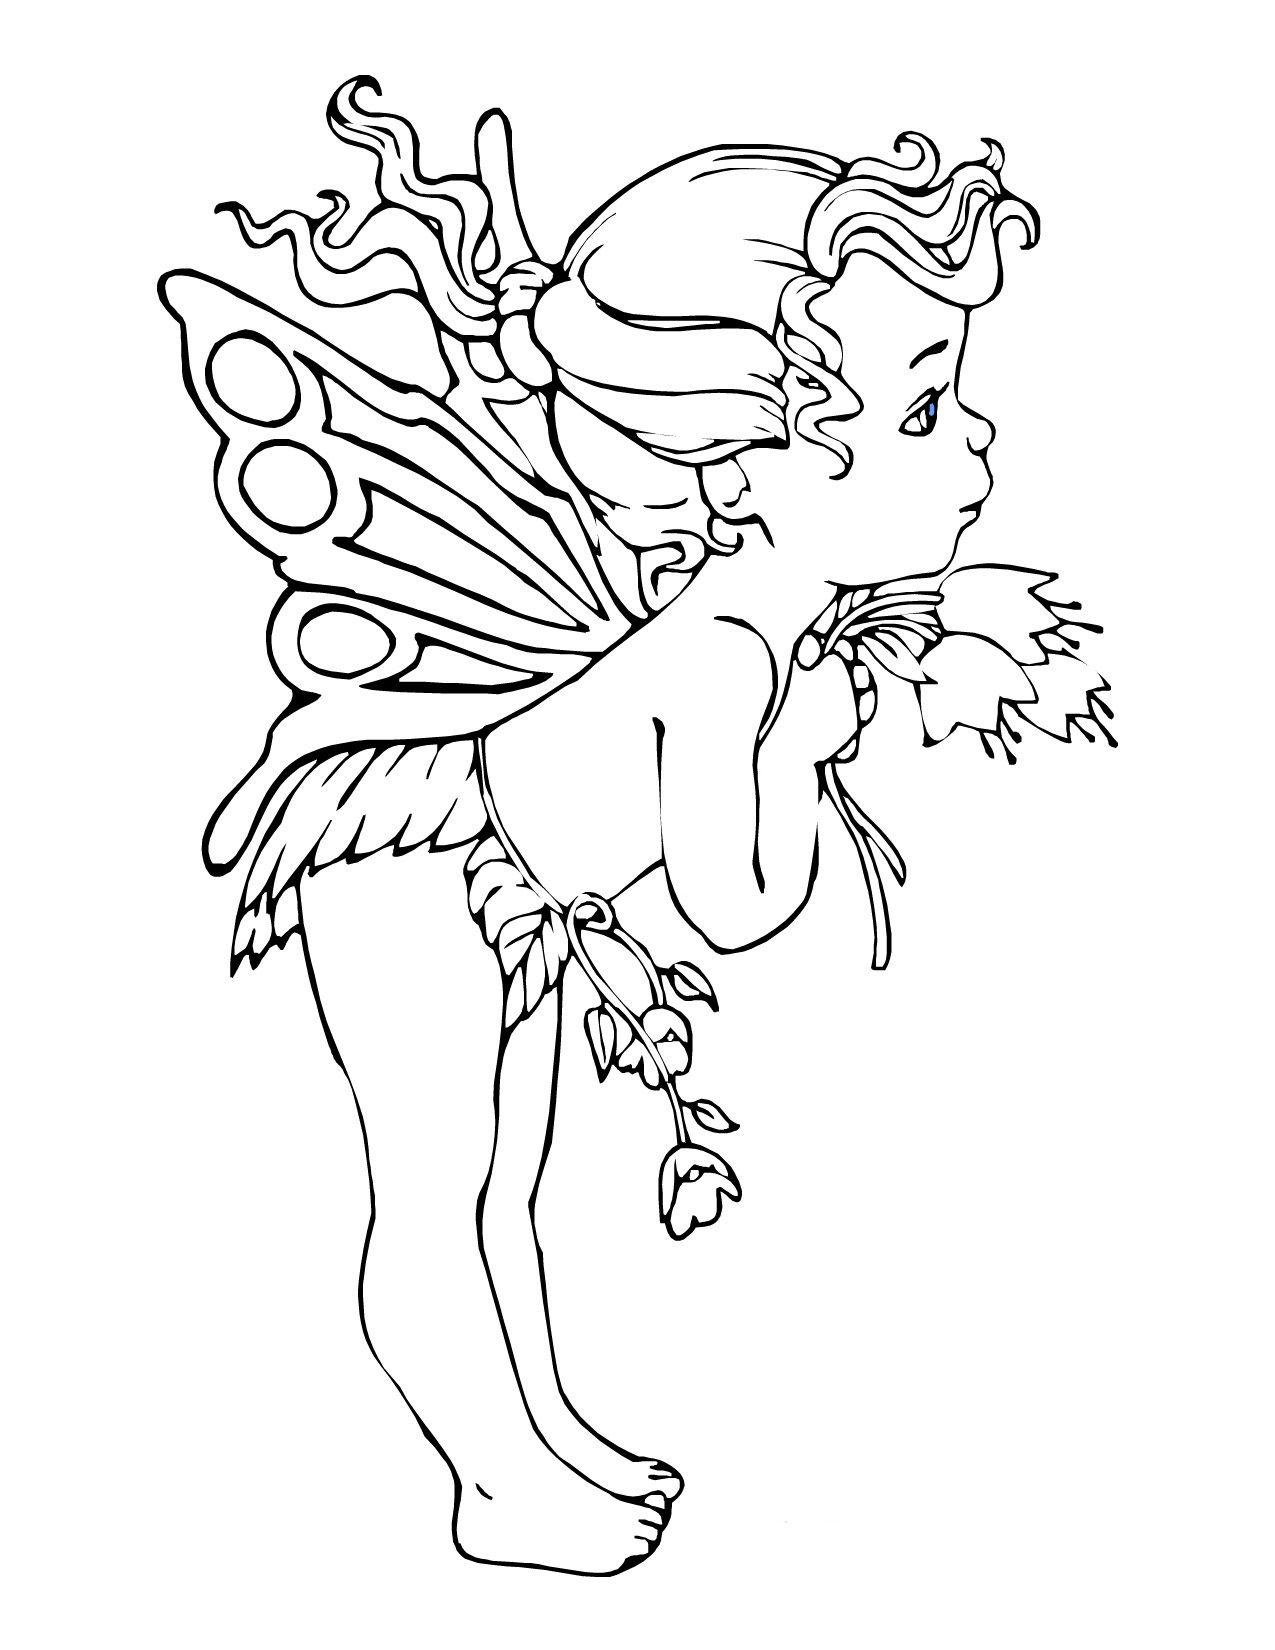 graphic regarding Printable Fairies Coloring Pages named No cost Printable Fairy Coloring Web pages For Young children design and style